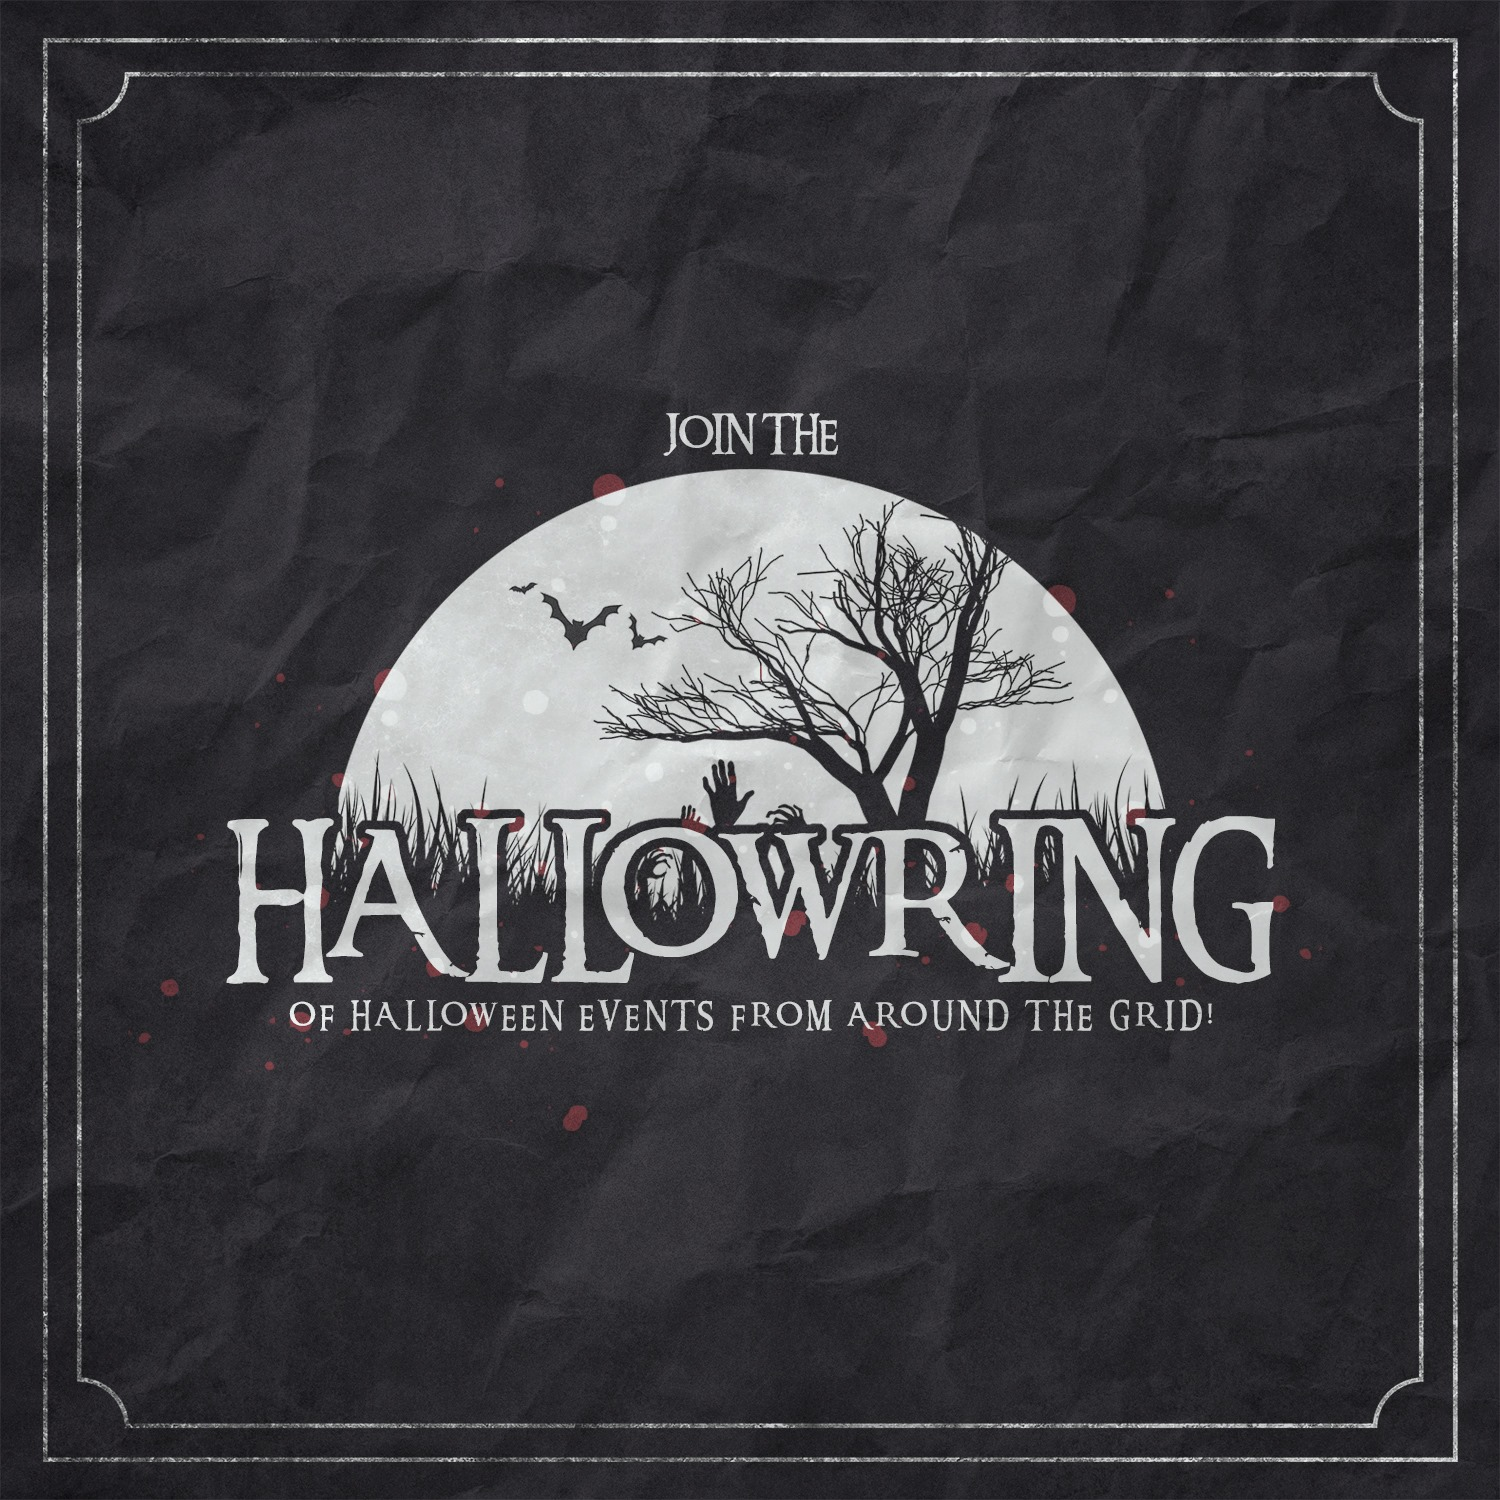 If Halloween Thrills Are Your Thing, Check out the HALLOWRING